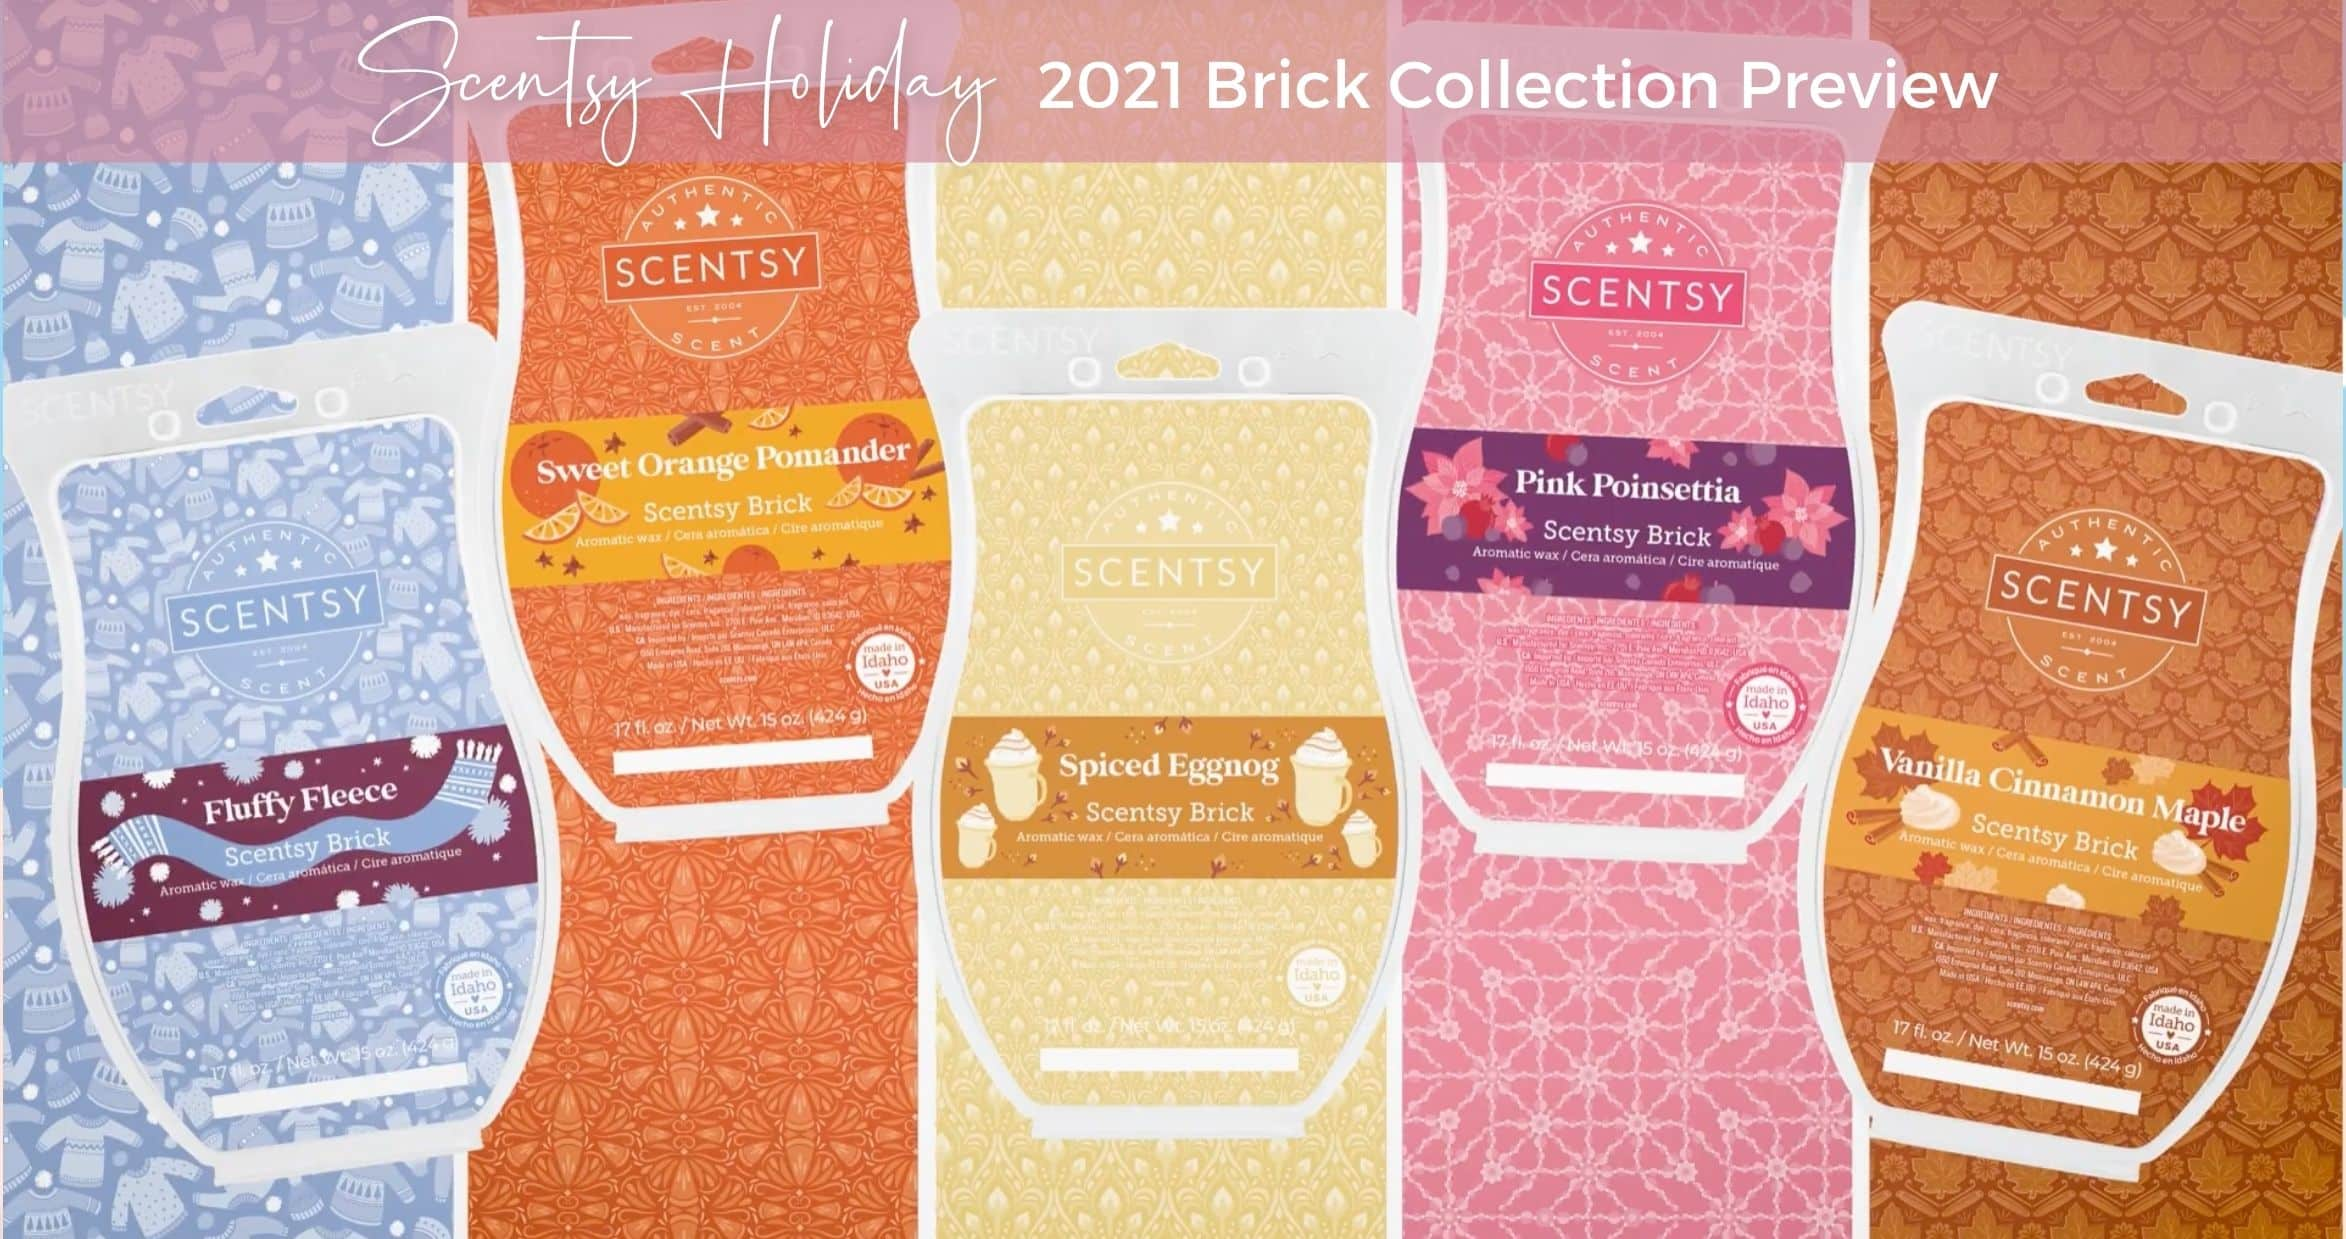 Scentsy Holiday Brick Collection Preview